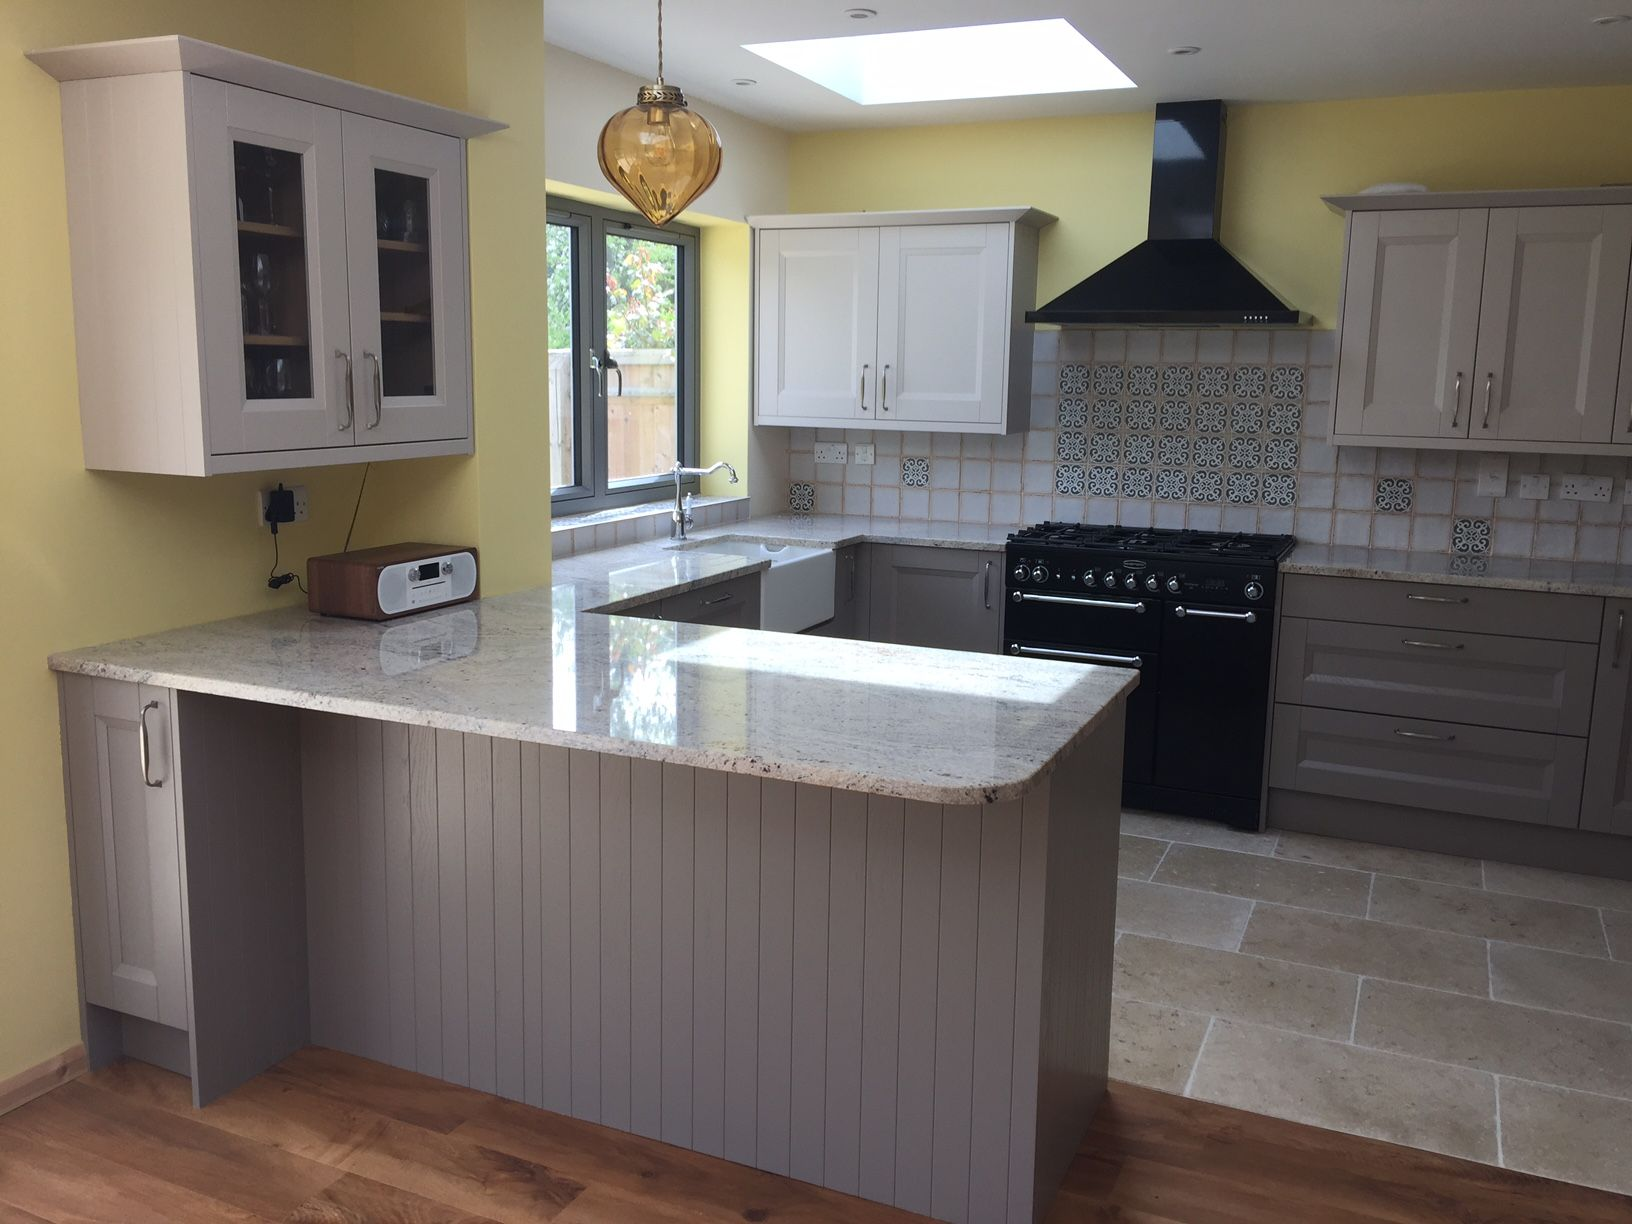 Granite Worktops Kitchen Hilton Painted Kitchen Units In 2 Tone Colours With Ivory Fantasy